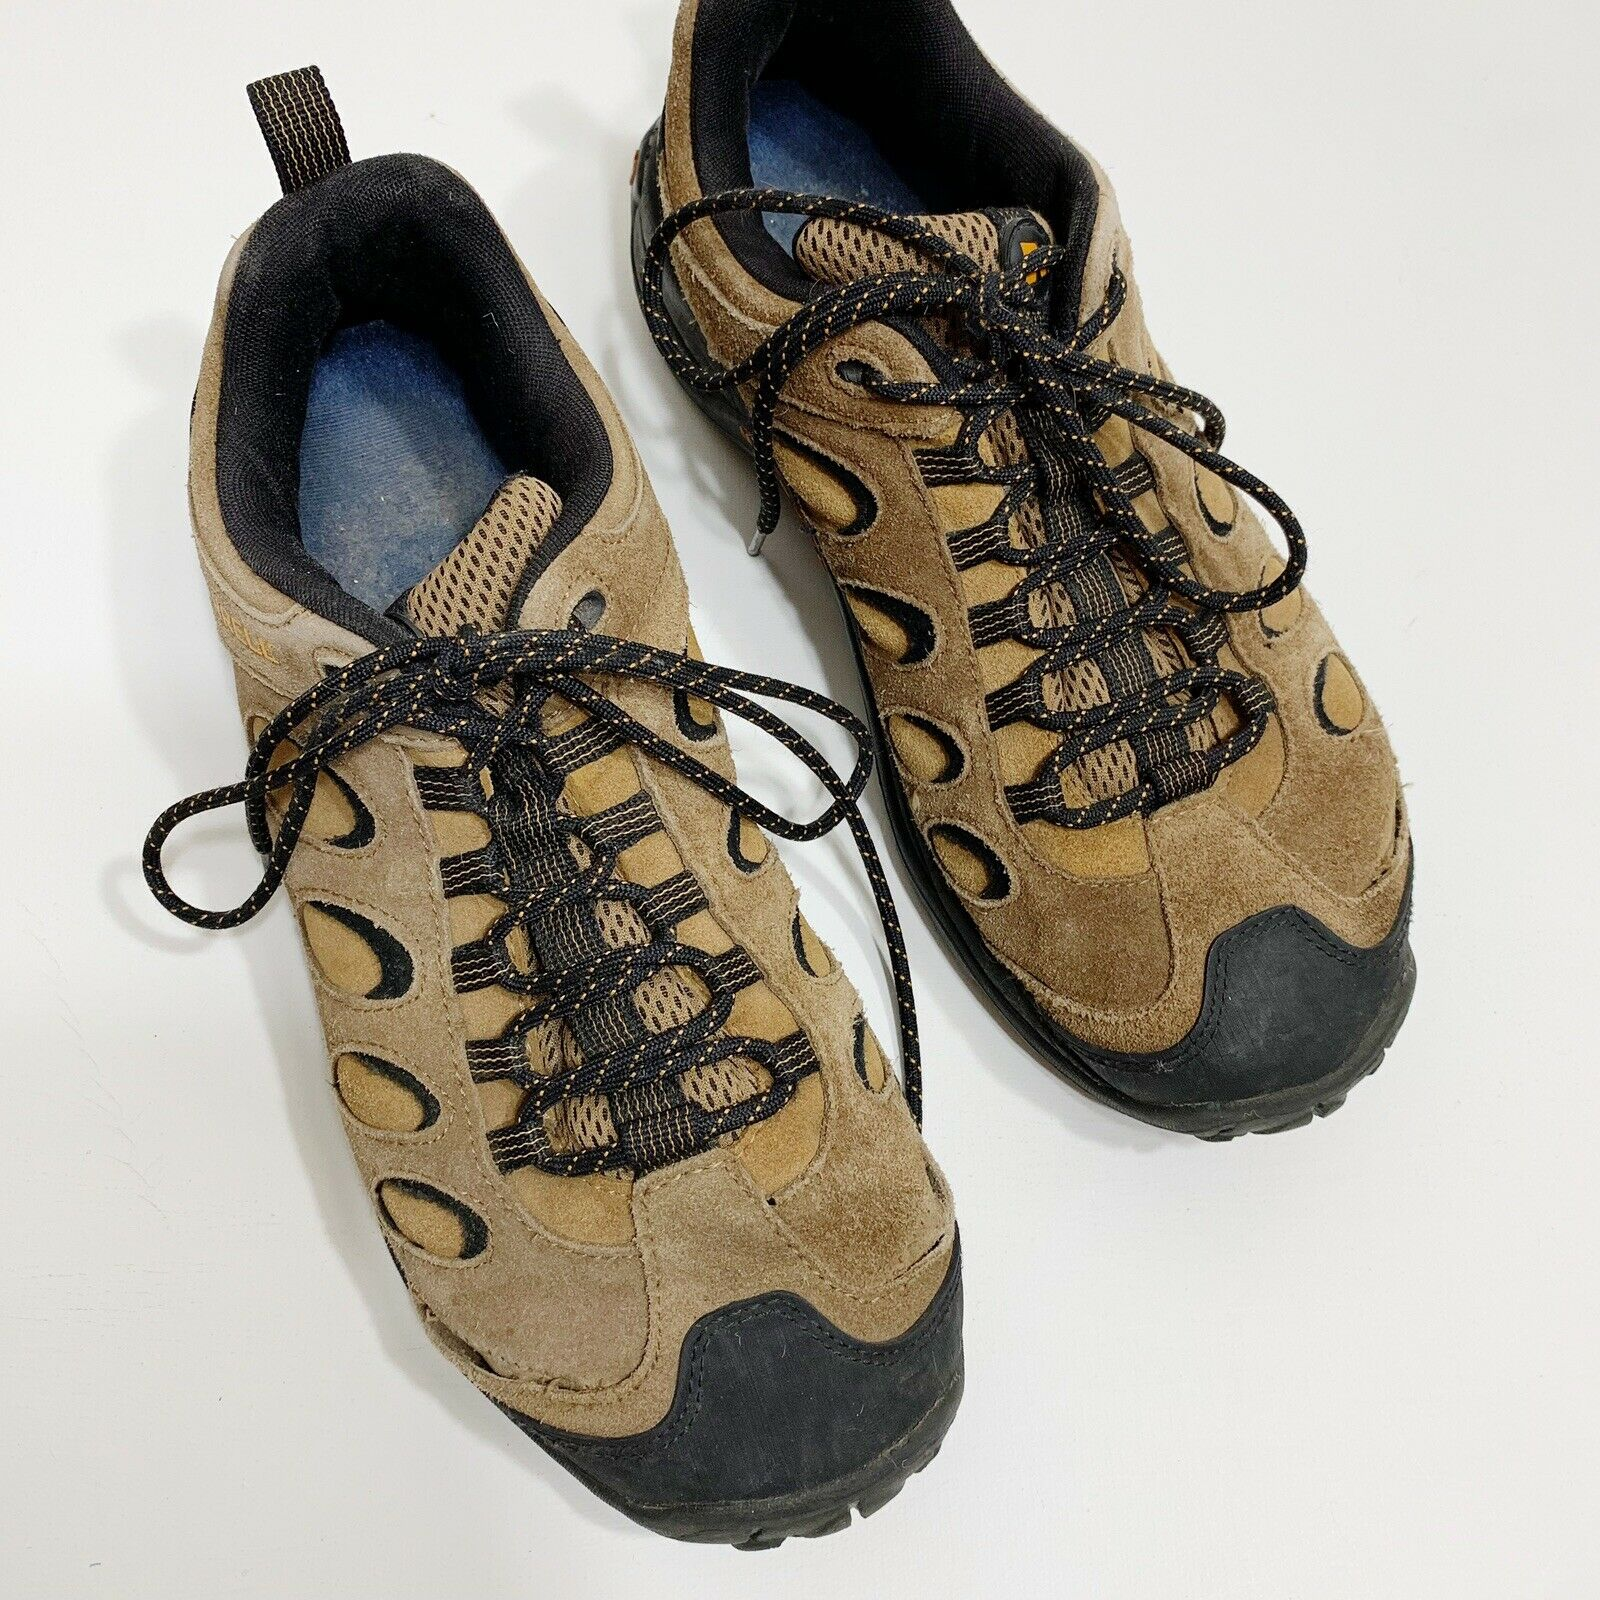 Merrell Relfex Low Hikers Brown Suede Rubber Sole Waterproof Lace Up shoes 11